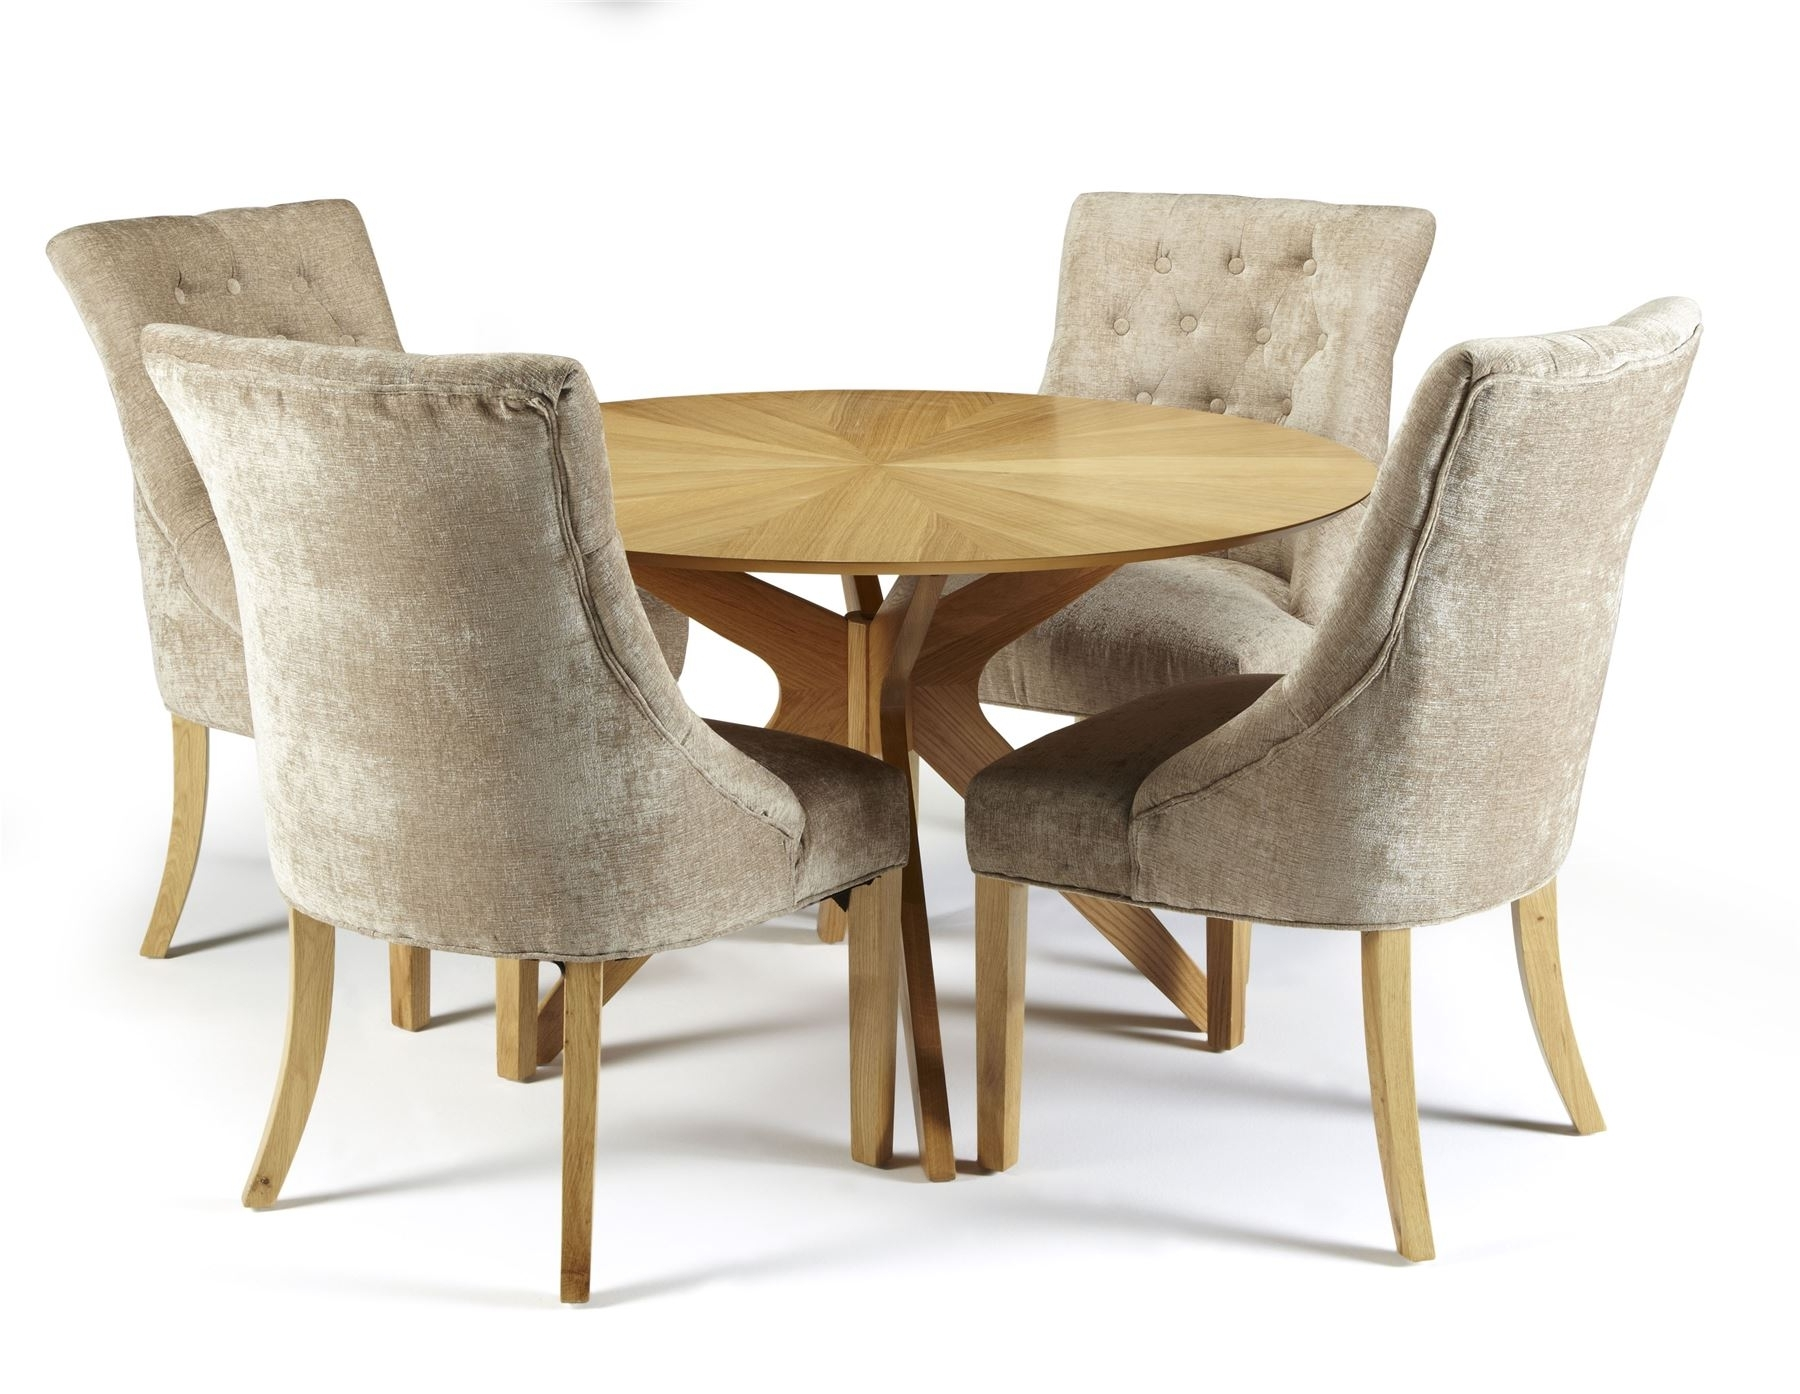 Widely Used Round Oak Dining Tables And Chairs Within Bexley Round Oak Dining Table And 4X Hampton Mink Fabric Dining (View 25 of 25)